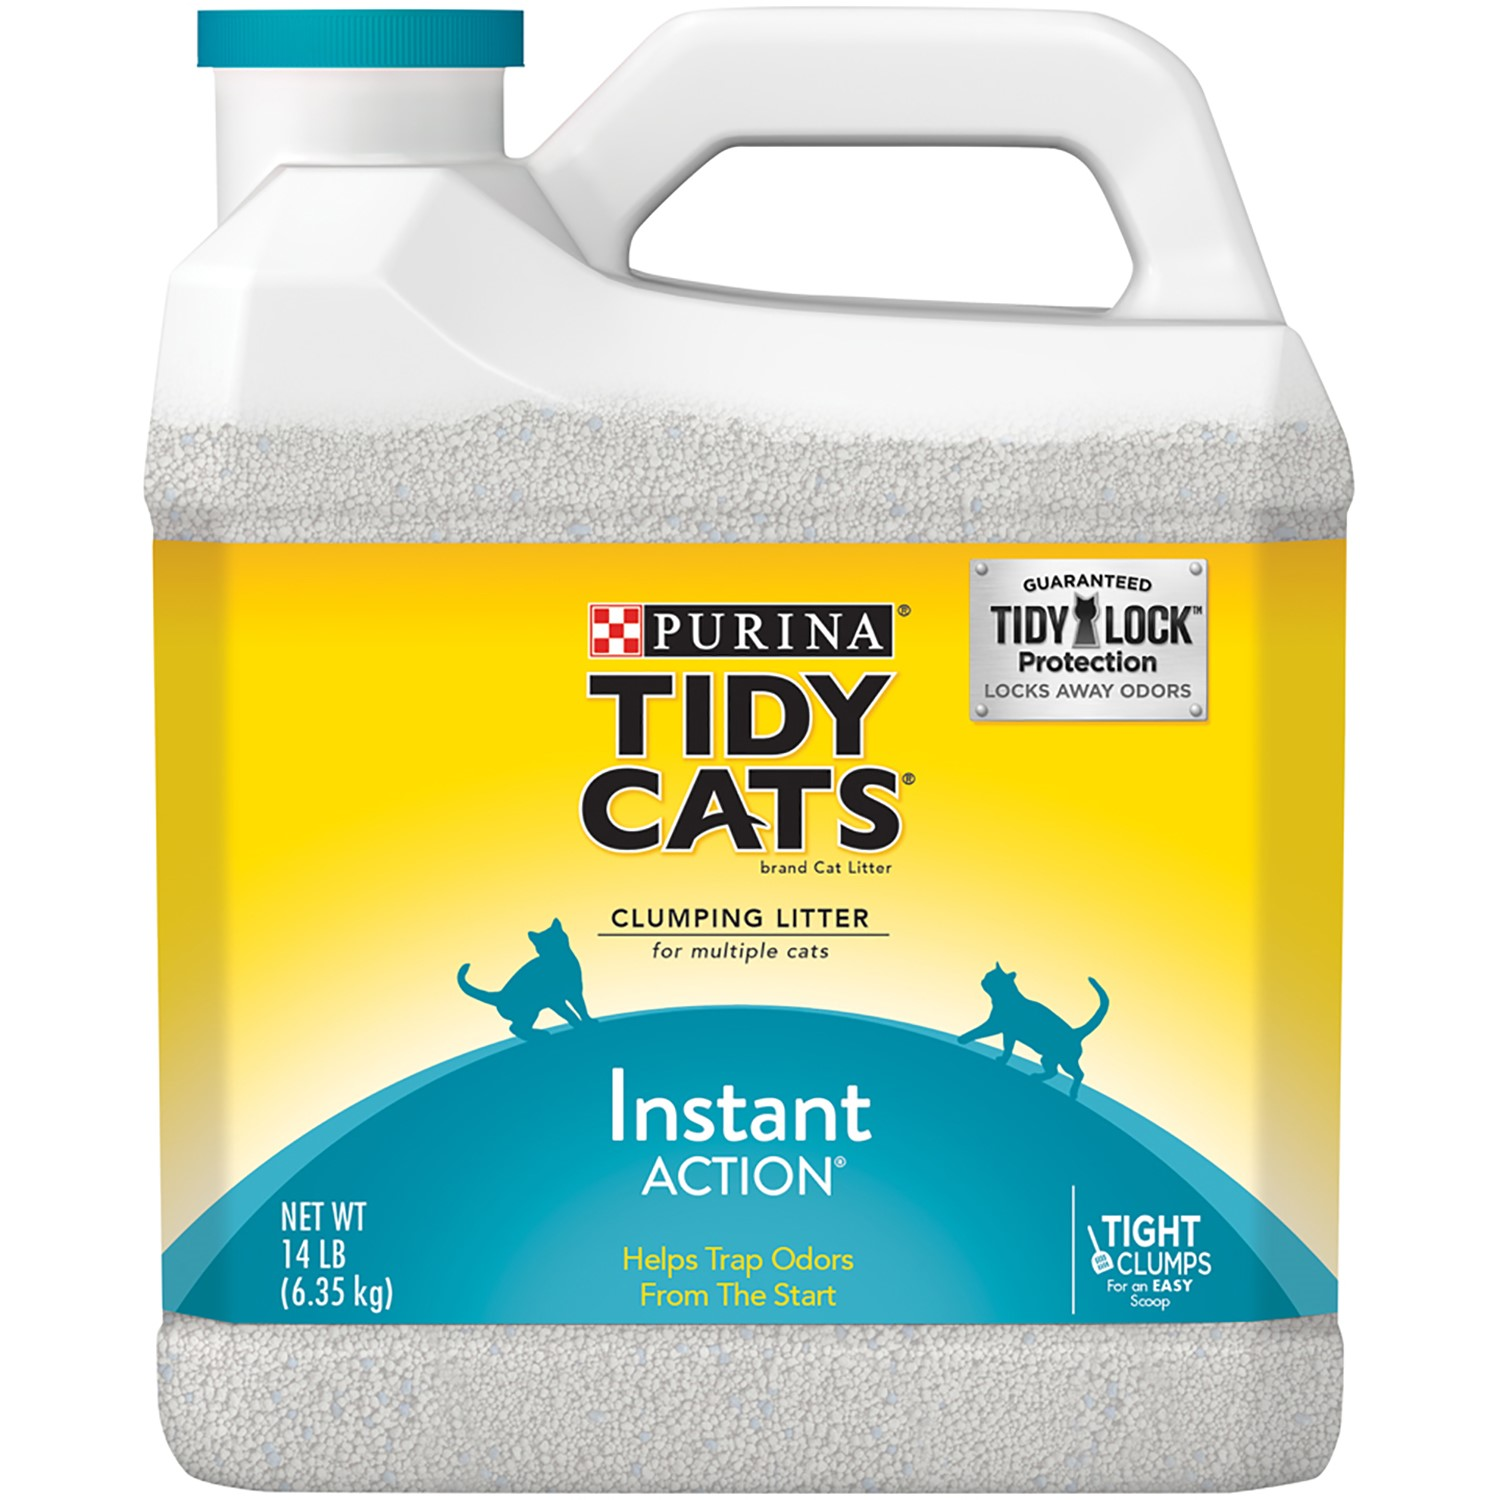 Purina Tidy Cats Clumping Cat Litter for Multiple Cats 14 lb. Jug